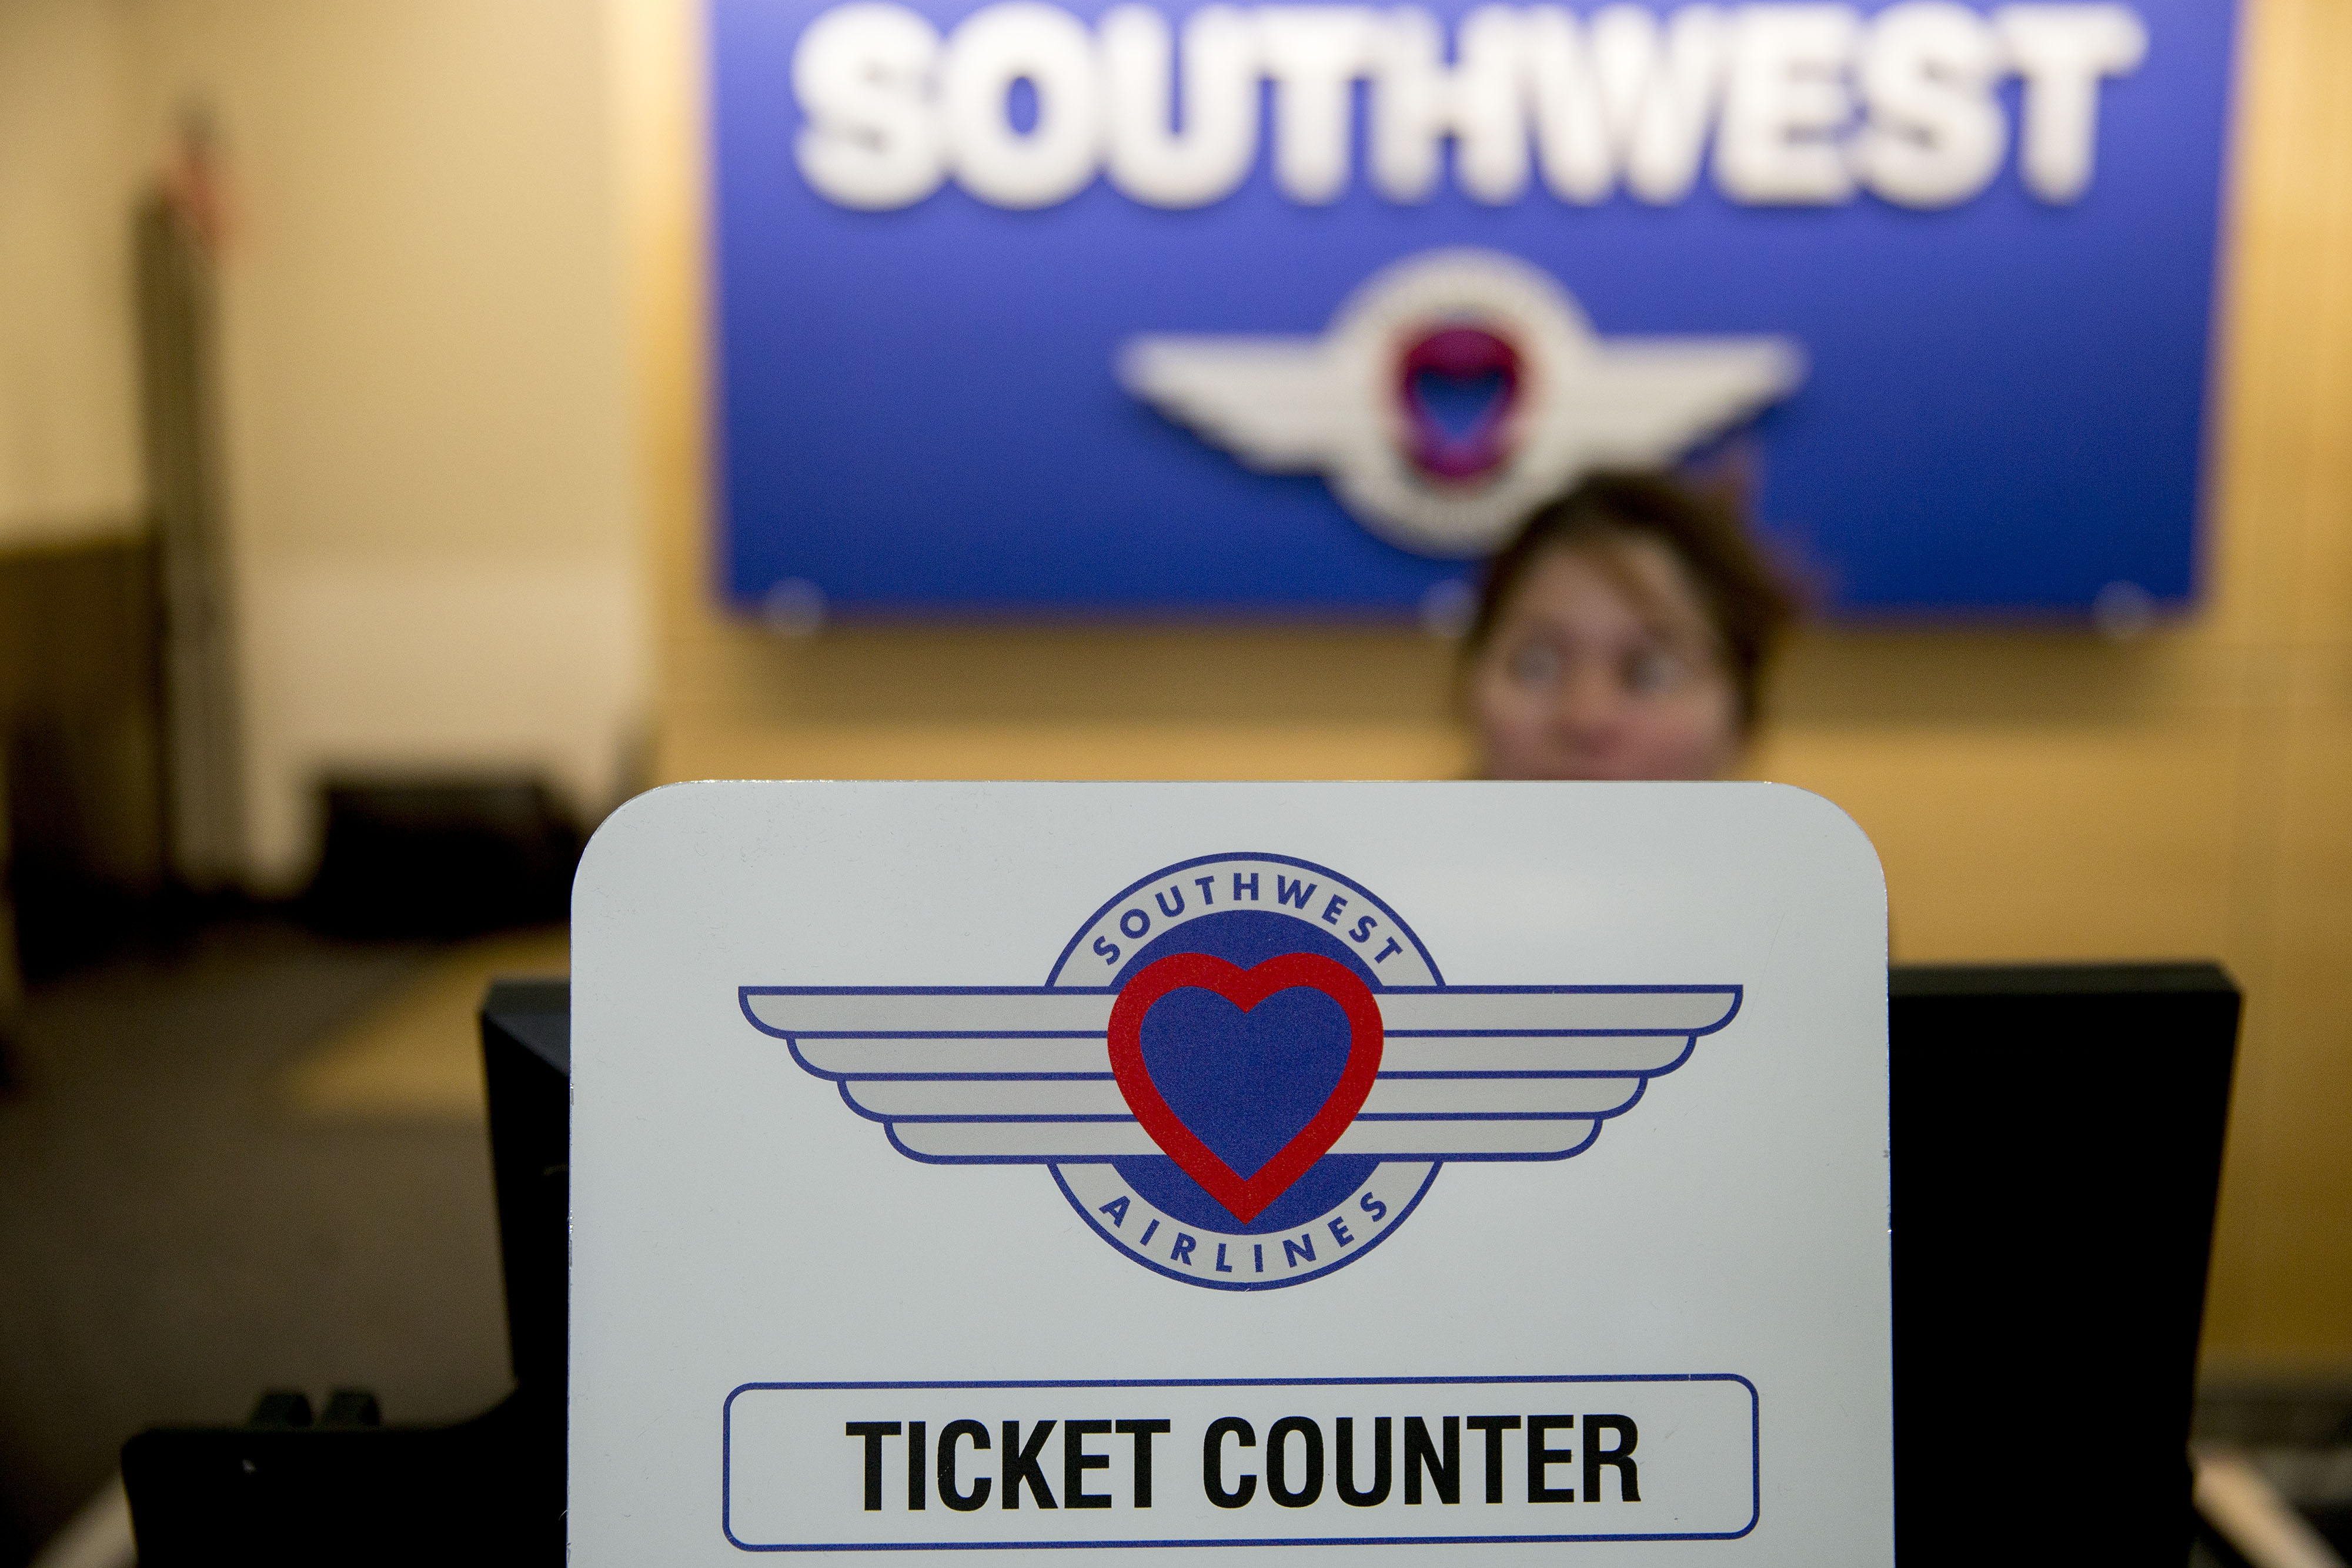 An attendant stands behind a ticket counter sign at the Southwest Airlines check-in counter at Ronald Reagan National Airport in Washington, D.C.